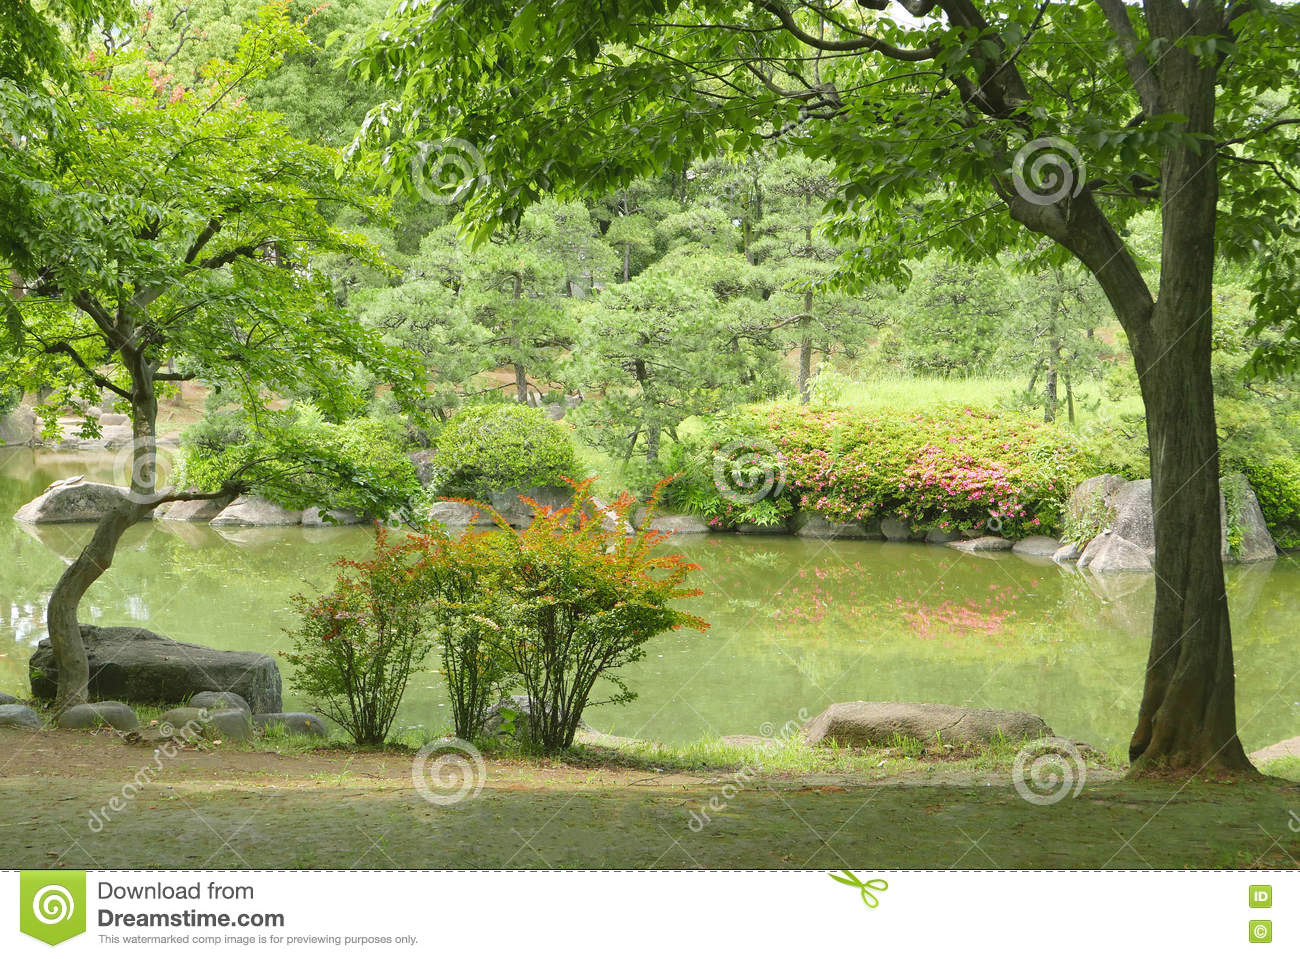 lac plante verte arbre fleur dans le jardin japonais de zen image stock image du conif re. Black Bedroom Furniture Sets. Home Design Ideas